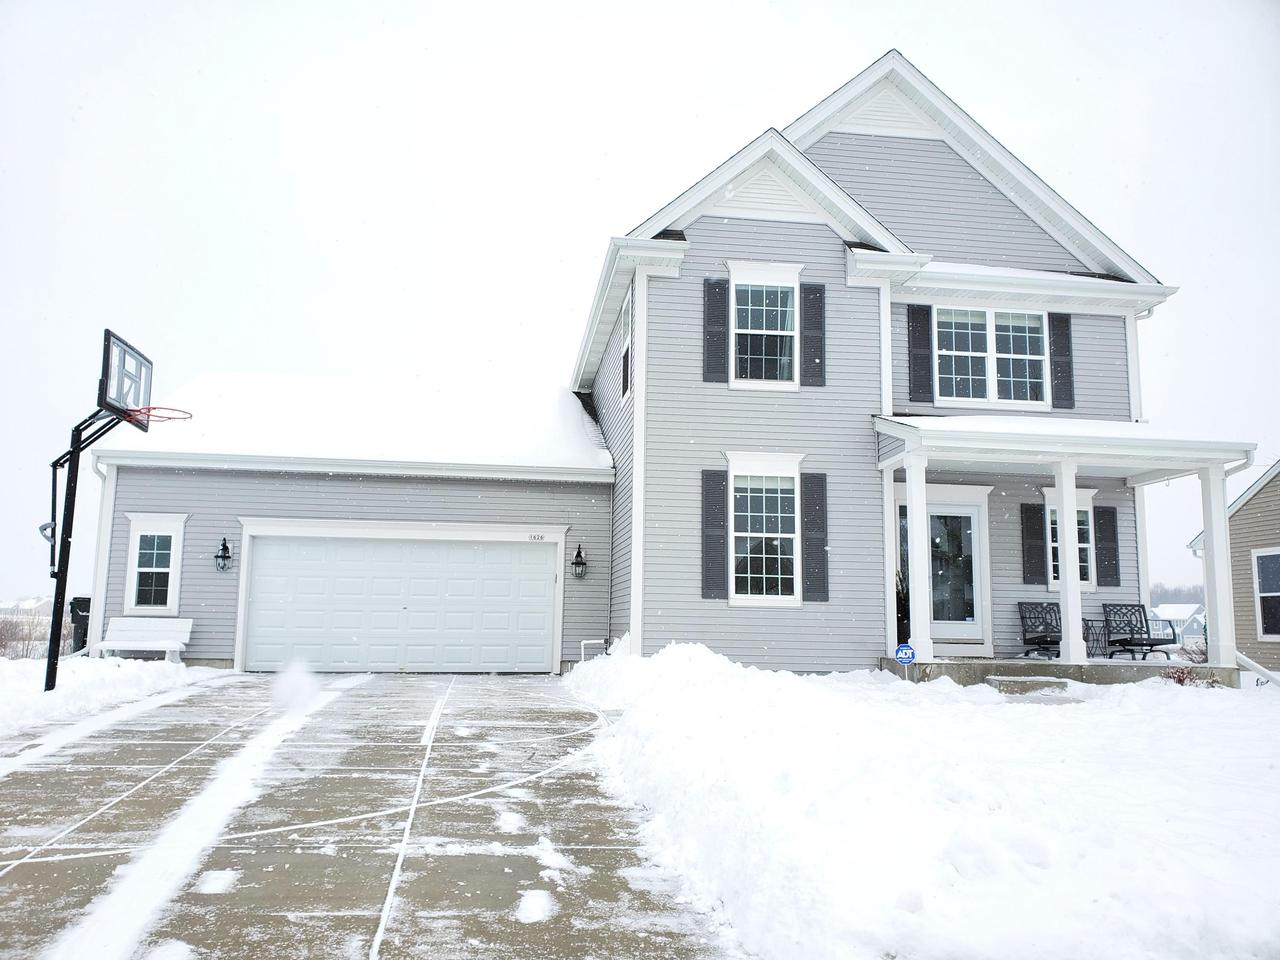 This warm and inviting 4 BR, 3.5 BA home is sure to impress and offers a SPECTACULAR view!The main level has an open concept Great rm, kitchen, dinette area. There is a flex room on the main level that can be used for various things- office, den, playroom ect.The garage is drywalled/insulated and OVERSIZED and  enters into the convenient locker style mudroom. In addition to the 3 bedrooms upstairs there is a loft & deluxe laundry room. The 4th BR w/ egress window is located in the nicely finished lower level that includes a full bath and family/ rec rm along with plenty of room for storage. Additional features include a home air to air exchanger, reverse osmosis system & an outdoor sprinkler system.You will not want to miss this one!